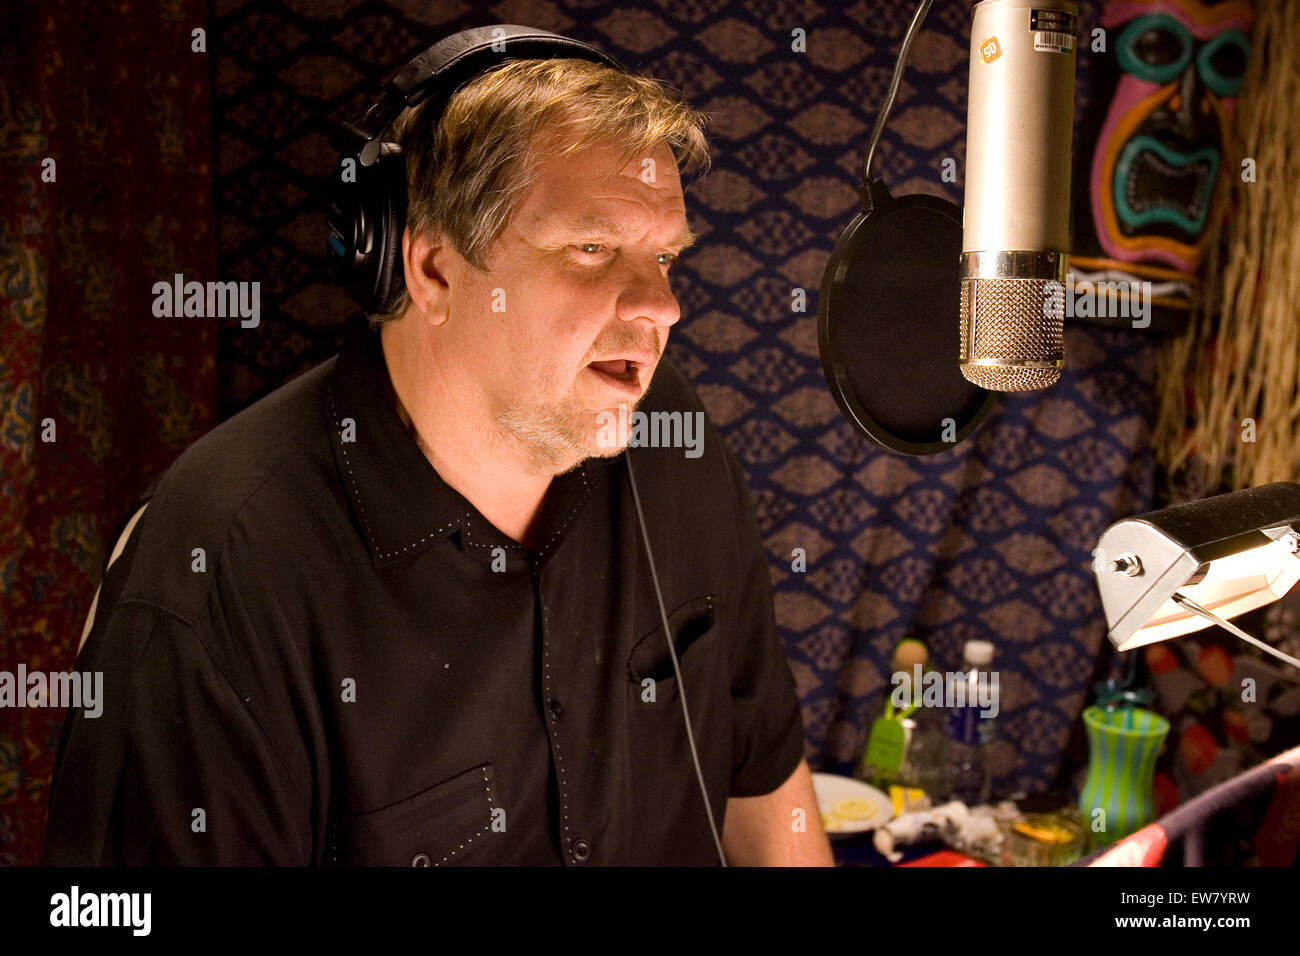 Rock musician Meatloaf recording his latest album 'Bat out of Hell III: The Monster is Loose' at The Village - Stock Image